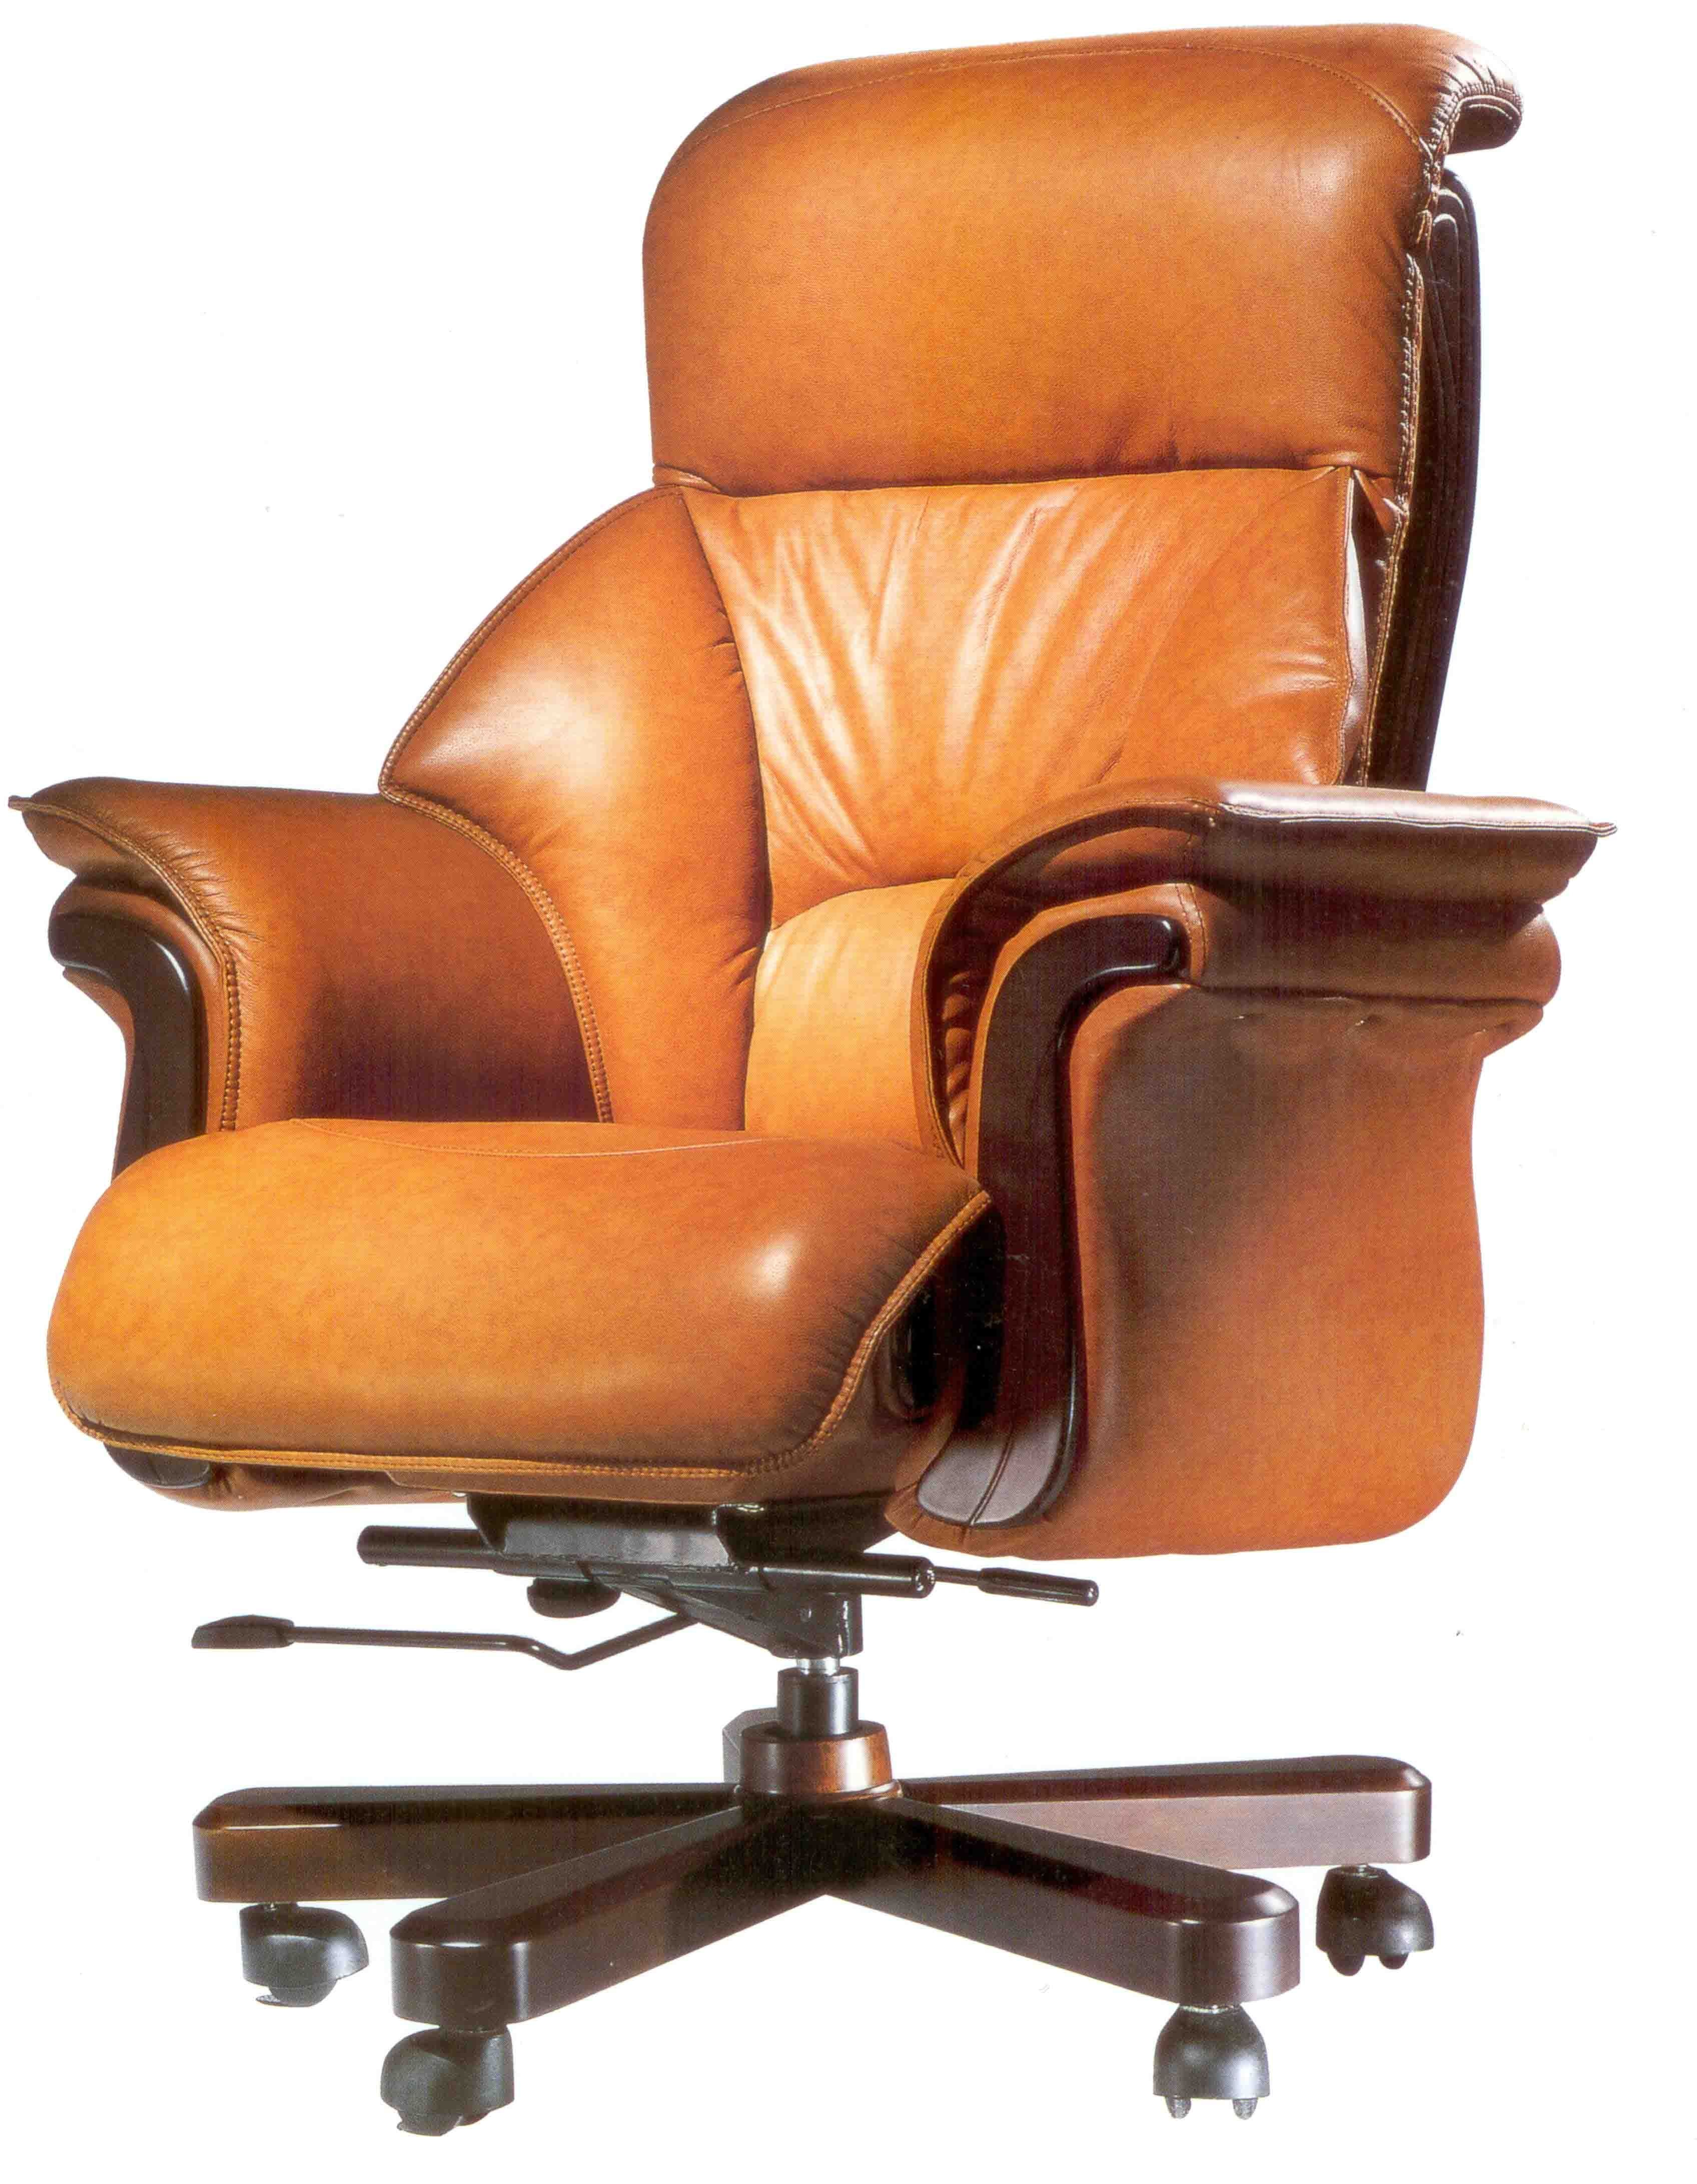 luxury office chairs leather. Luxury Desk Chairs Home Office Leather Pinterest